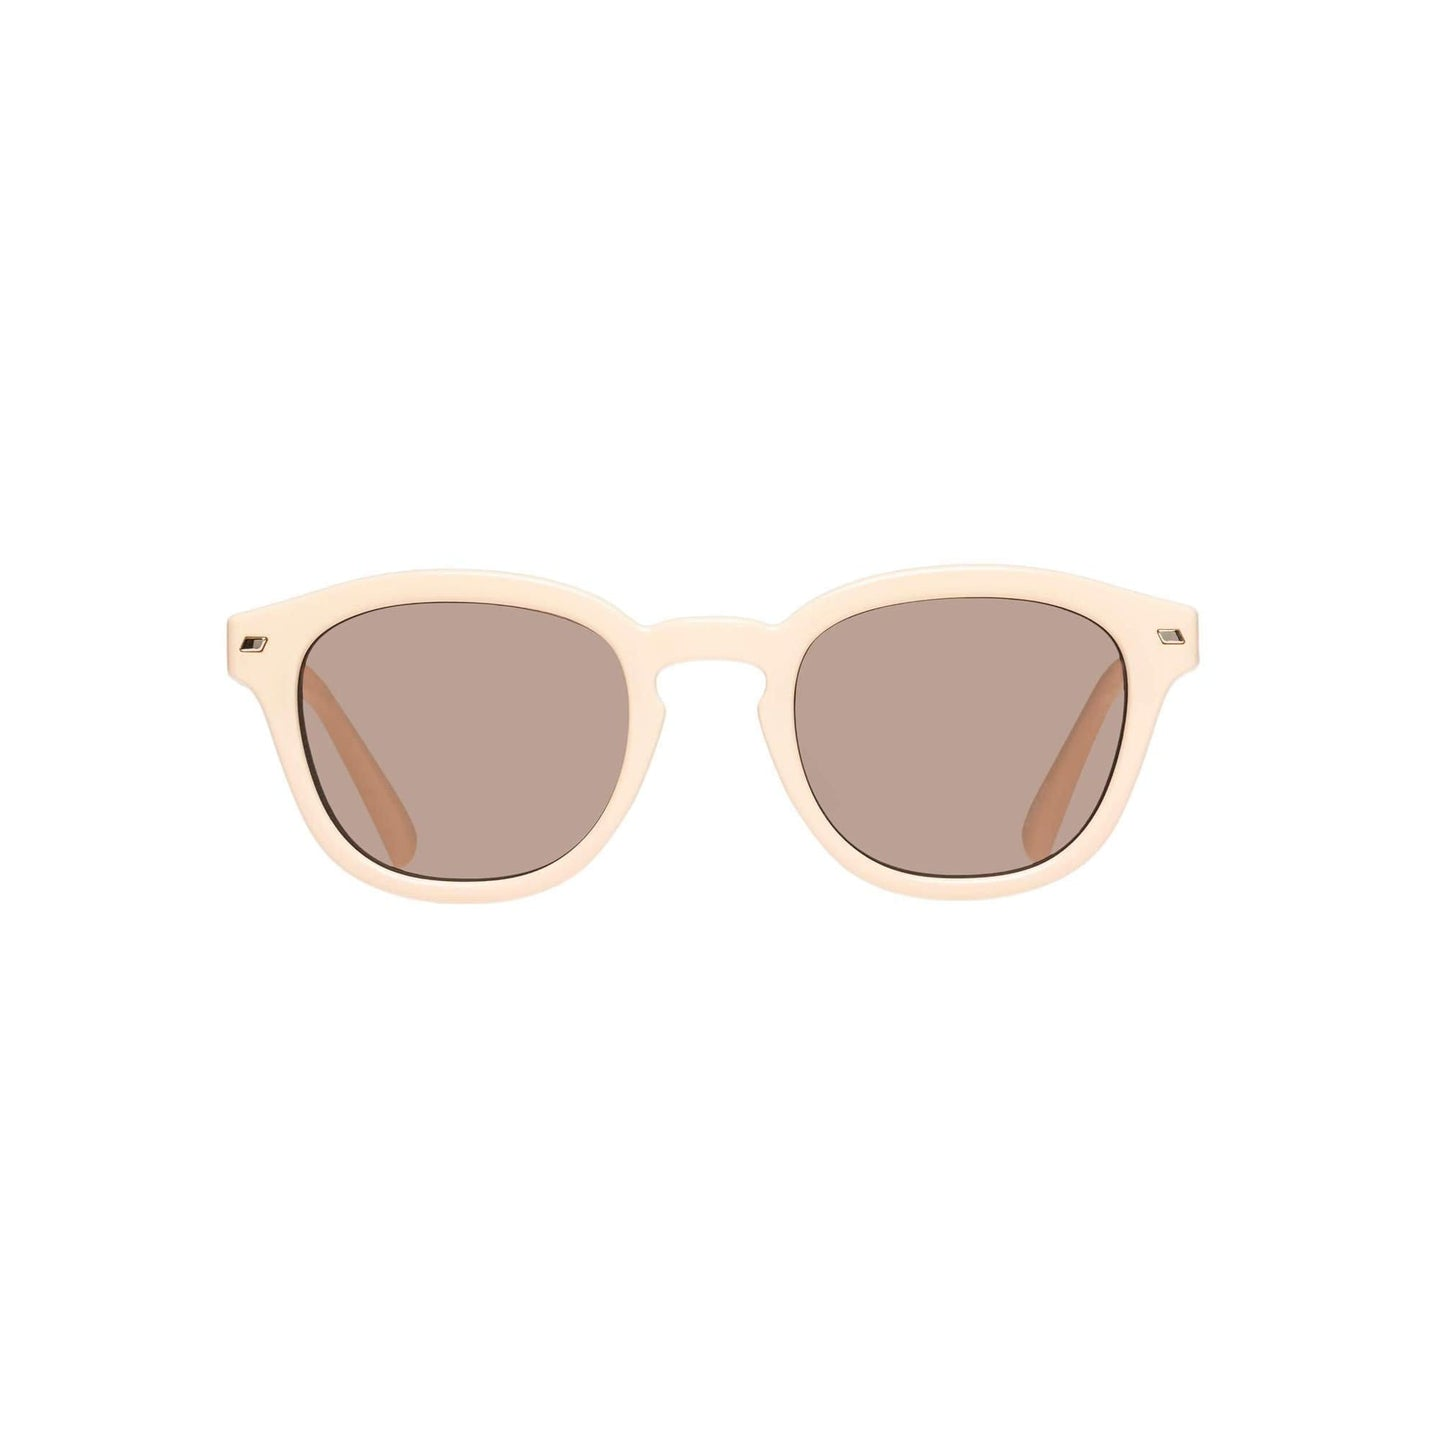 Conga Sunglasses / Neighborhood Goods